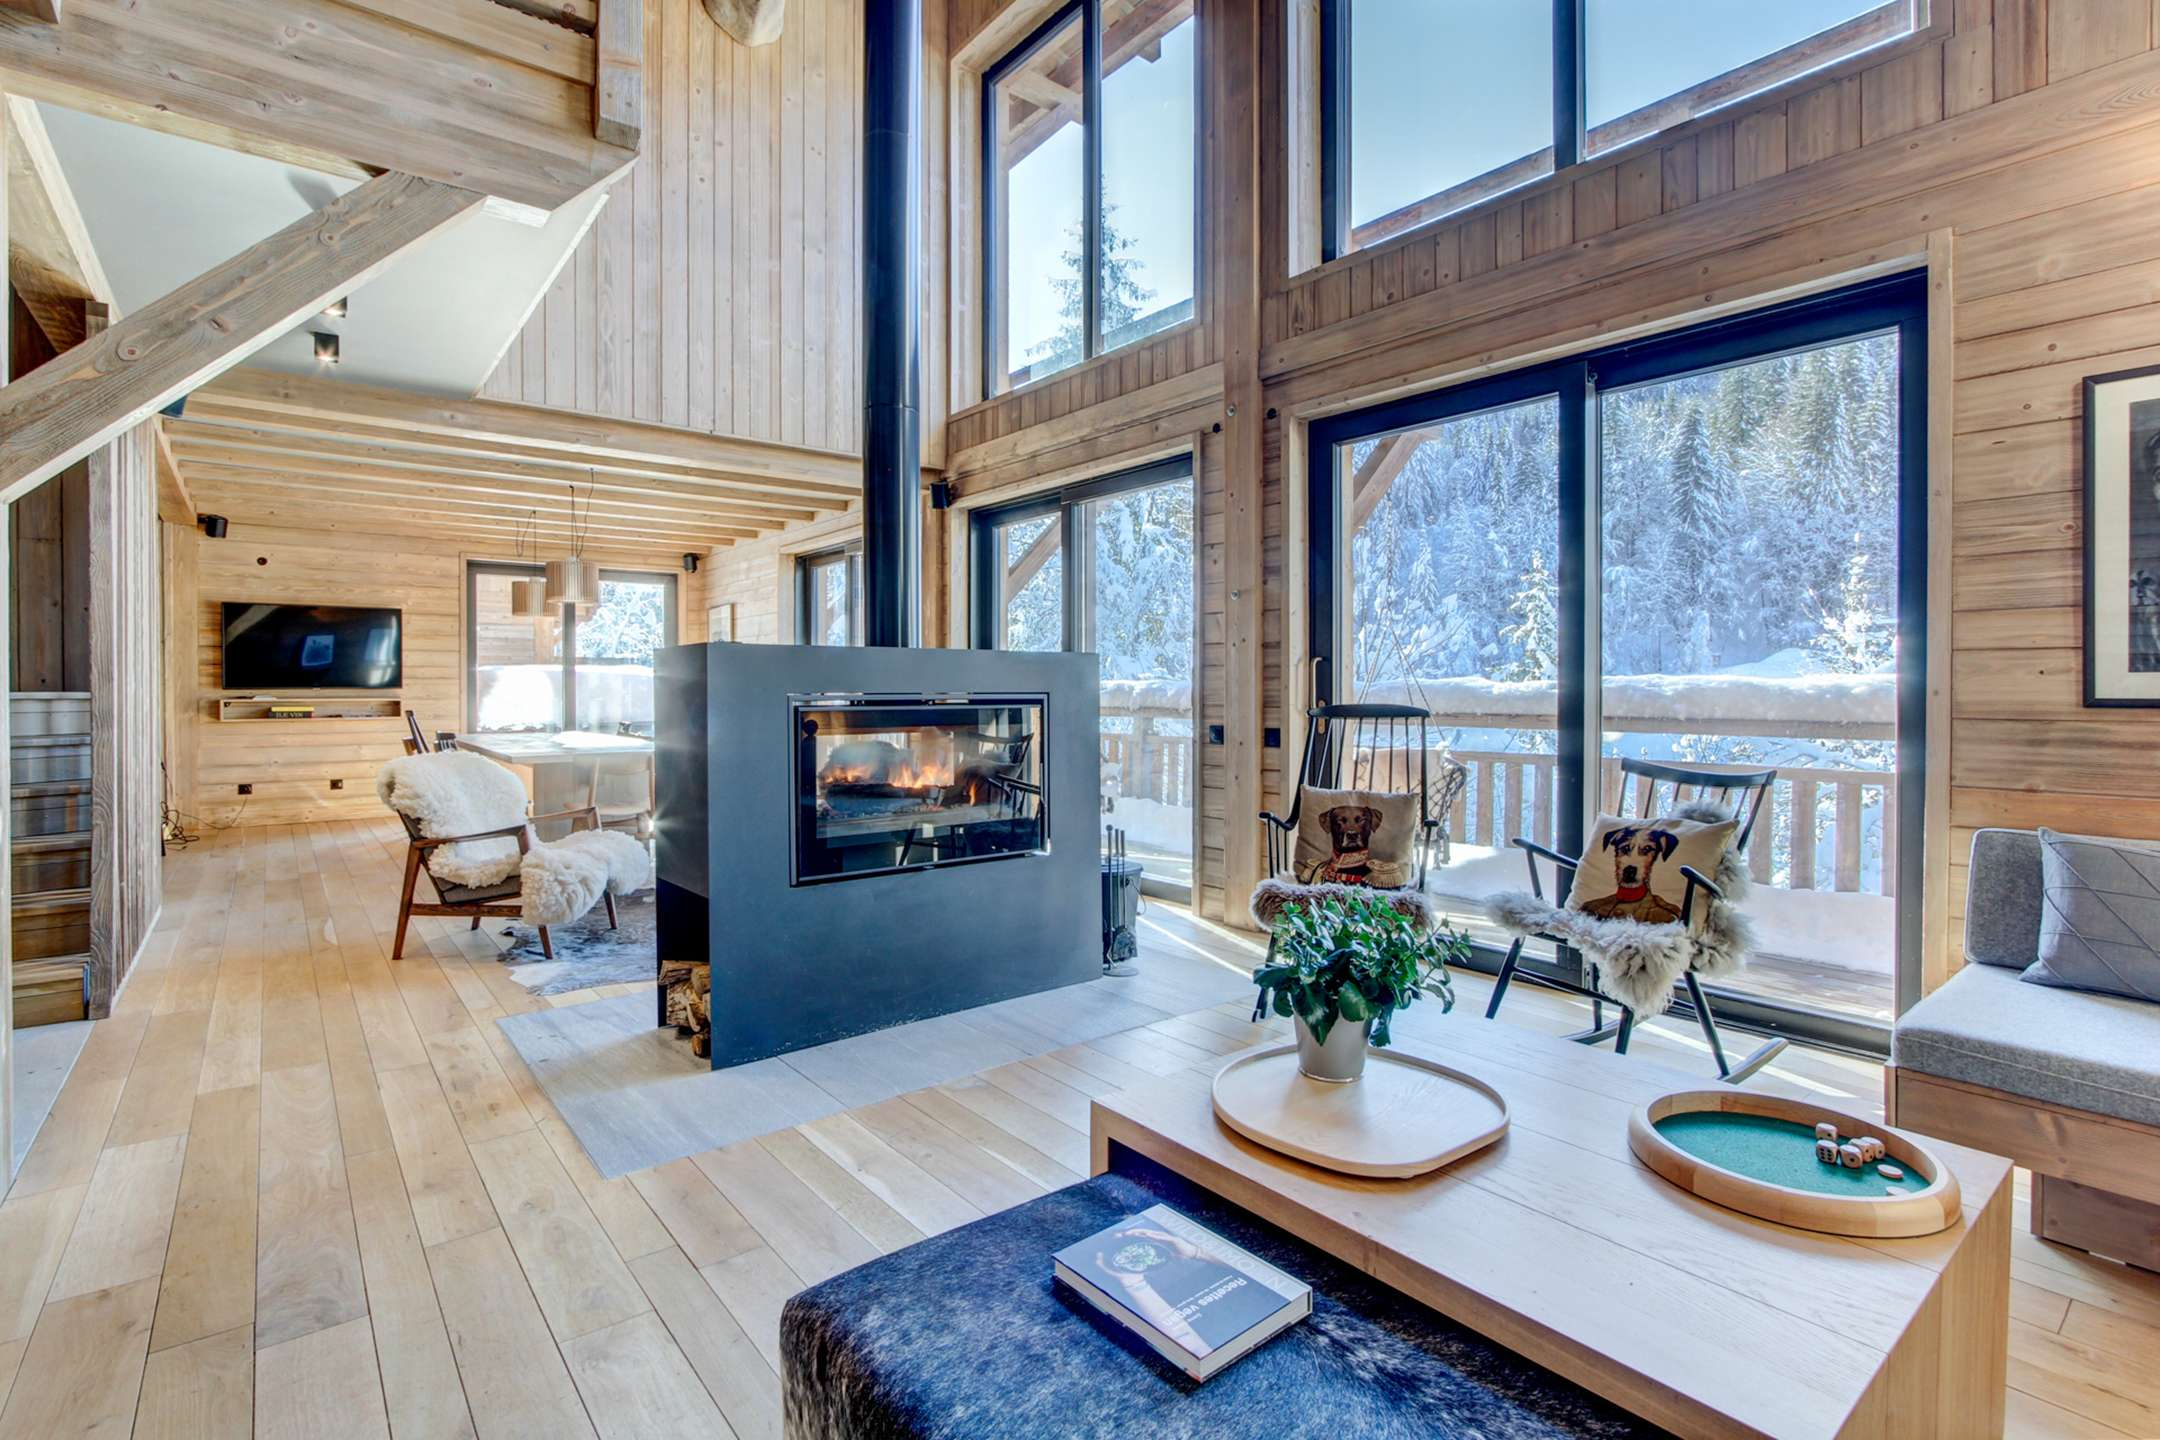 Mesanges C - Brand new chalet 6 bedrooms 6 bathrooms for up to 16 people